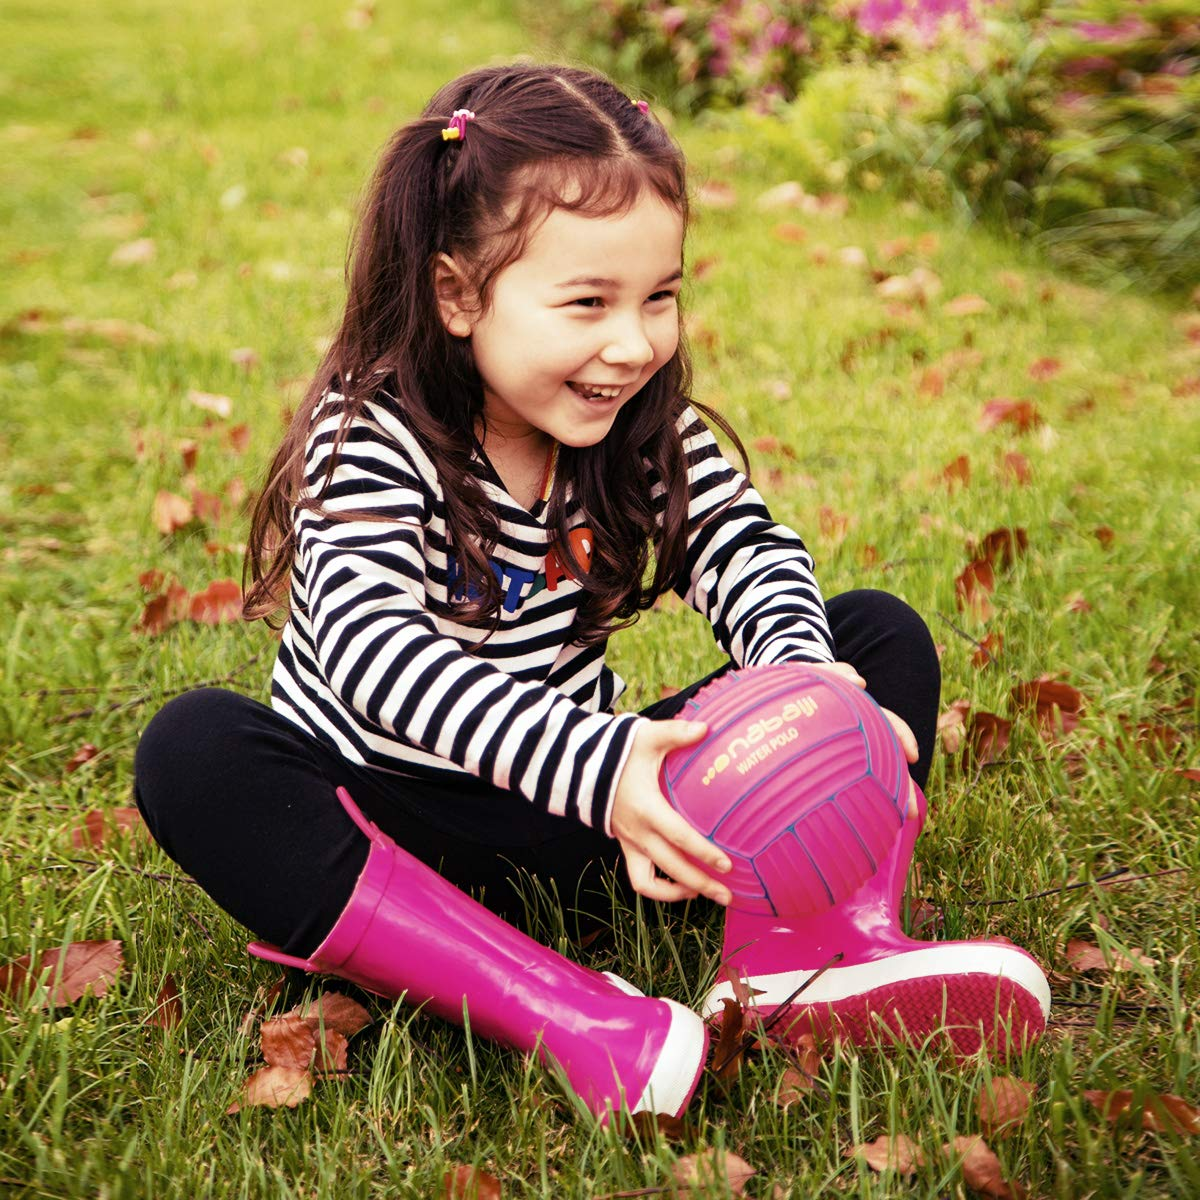 KomForme Kids Rain Boots, Plain Color Girl Rubber Boots Waterproof with Handles Pink by KomForme (Image #6)